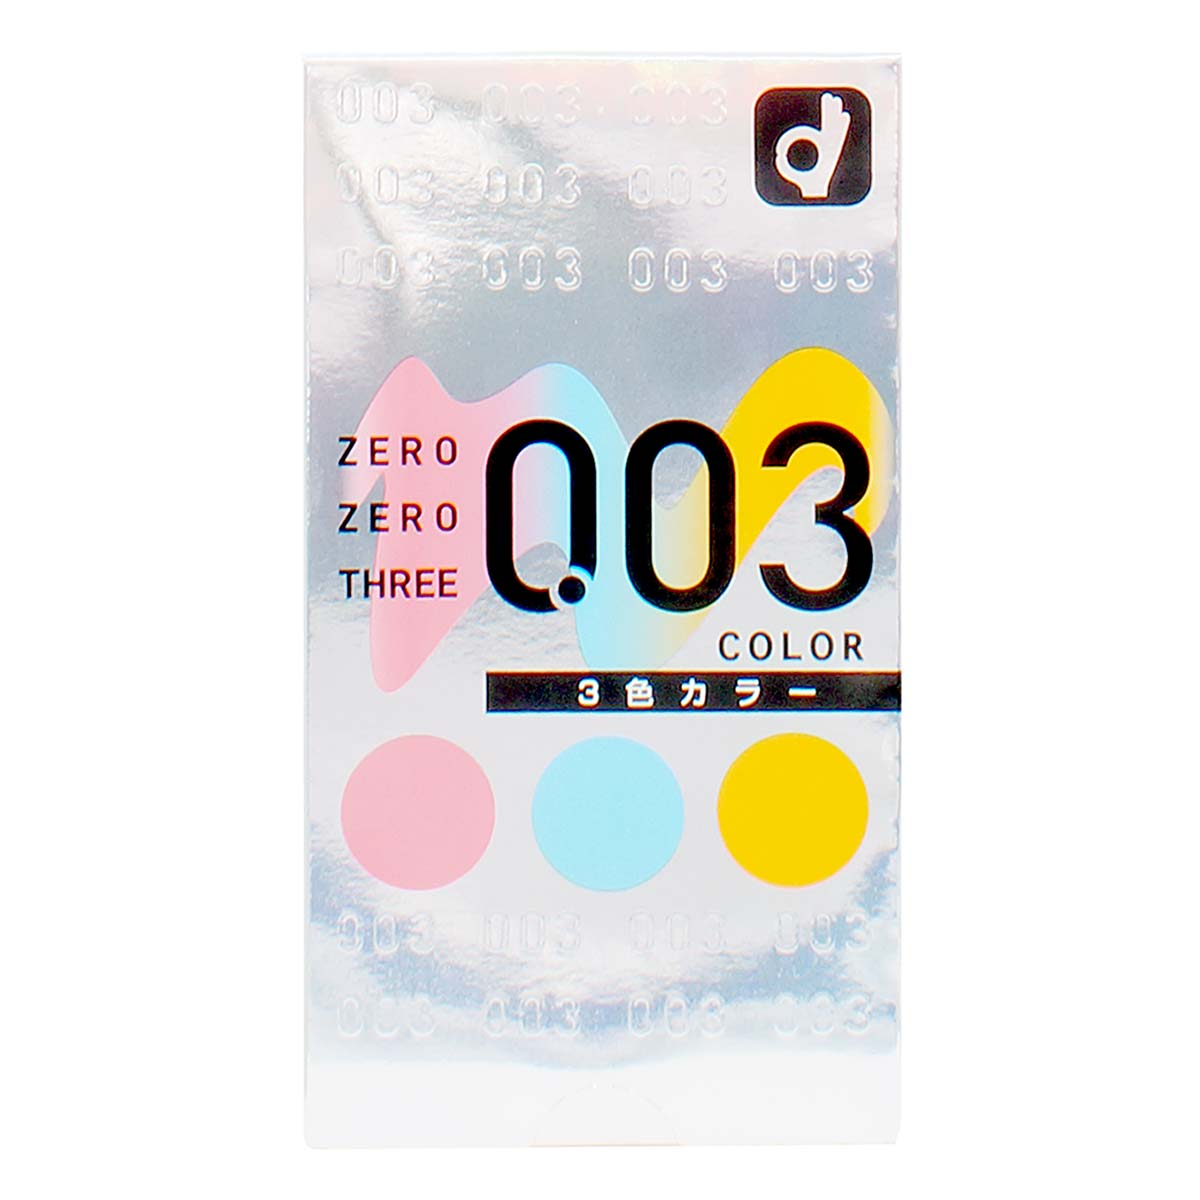 Zero Zero Three 0.03 3-colors (Japan Edition) 12's Pack Latex Condom